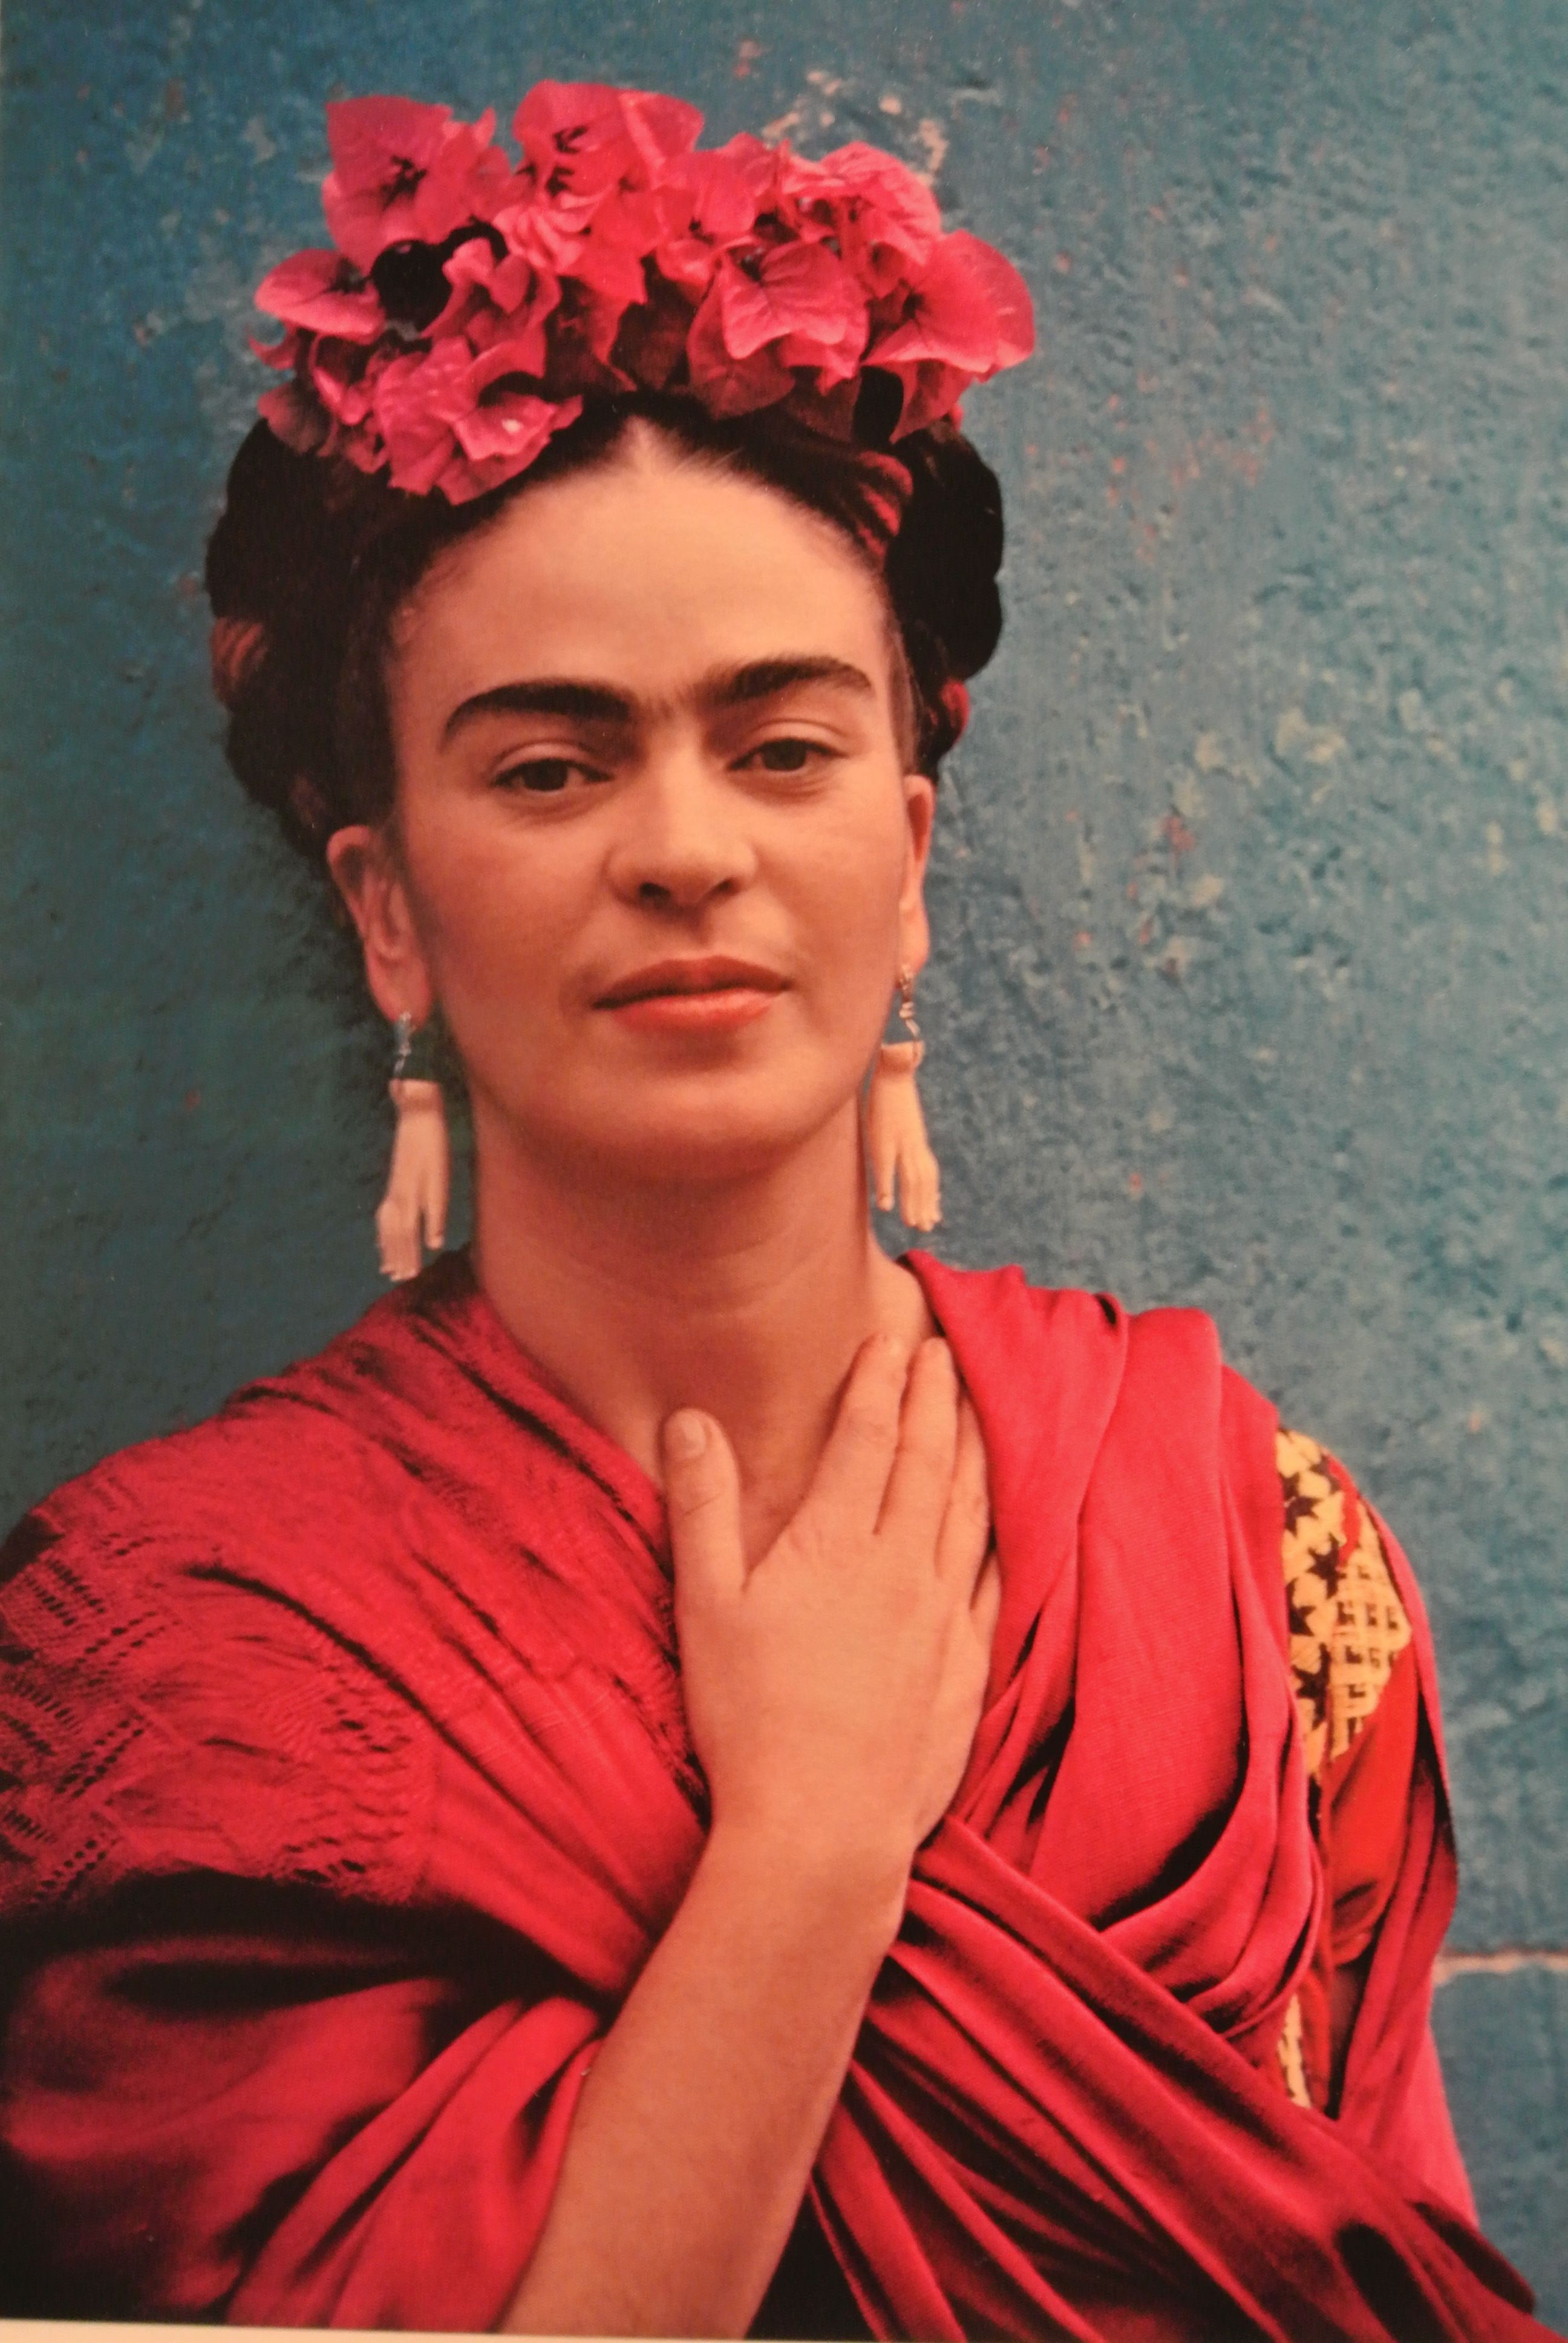 frida kahlo is one of my favorite artists she inspires me to use myself as a medium of art and. Black Bedroom Furniture Sets. Home Design Ideas